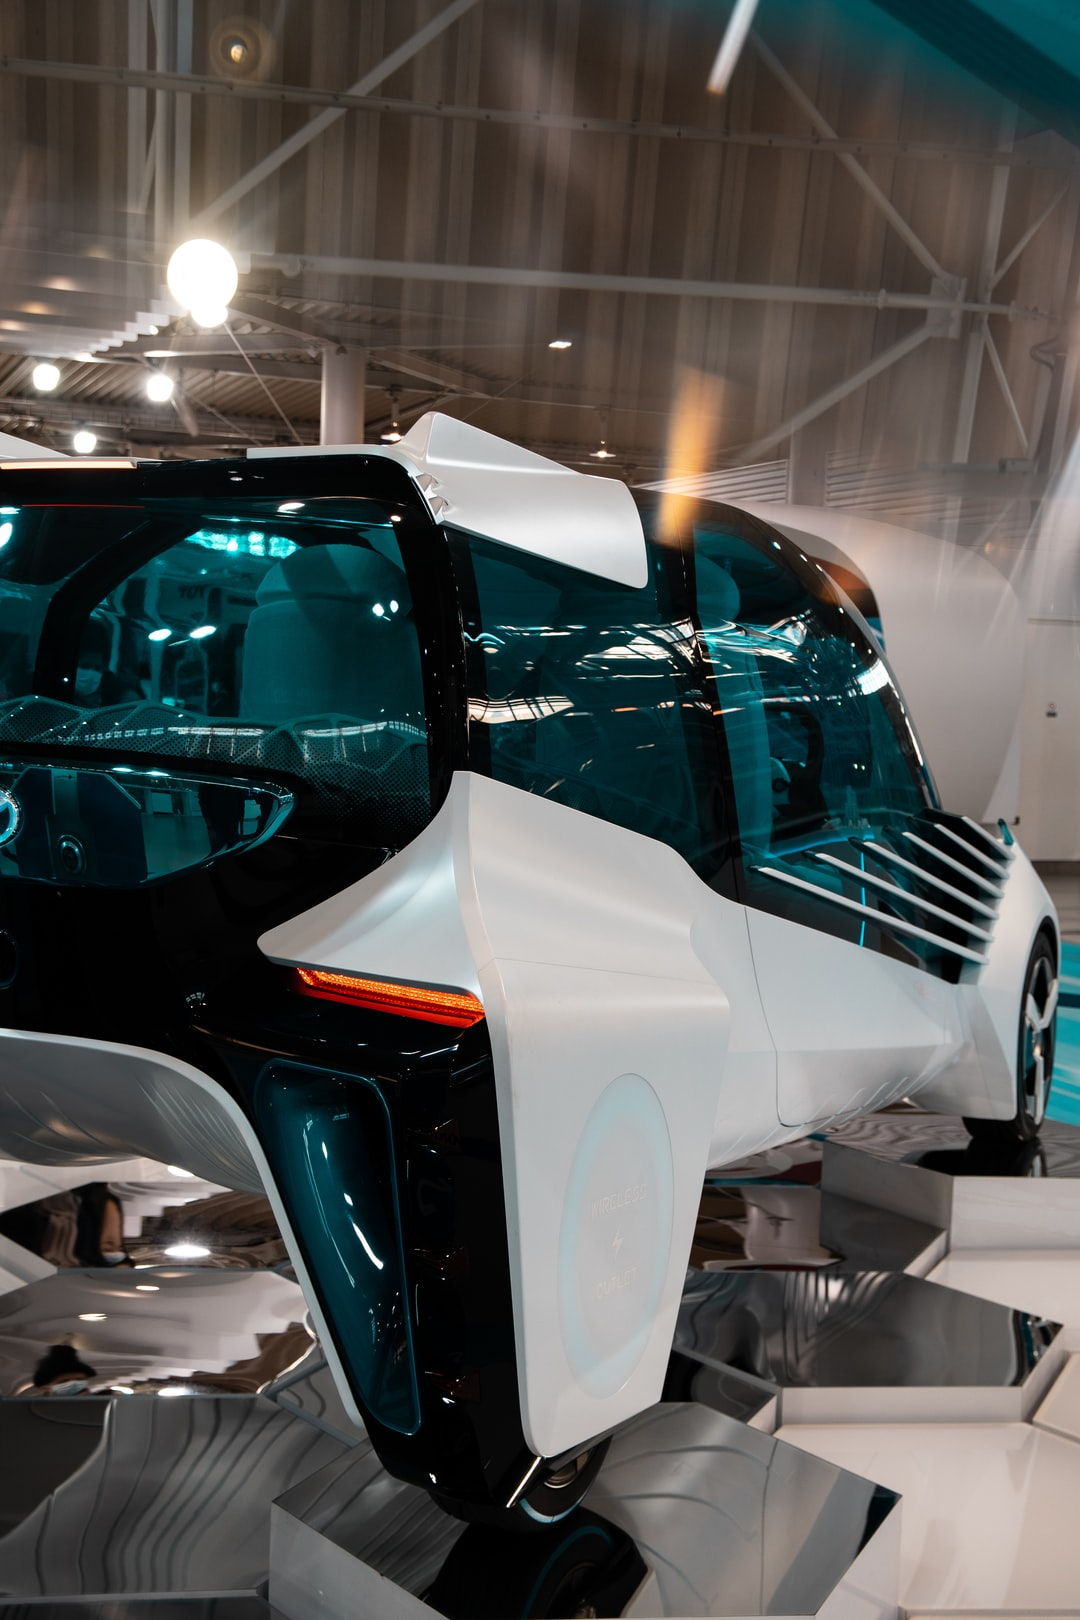 The Toyota FCV Plus Hydrogen Concept car, shown at the 2020 Megaweb Toyota City Showcase in Odaiba, Tokyo